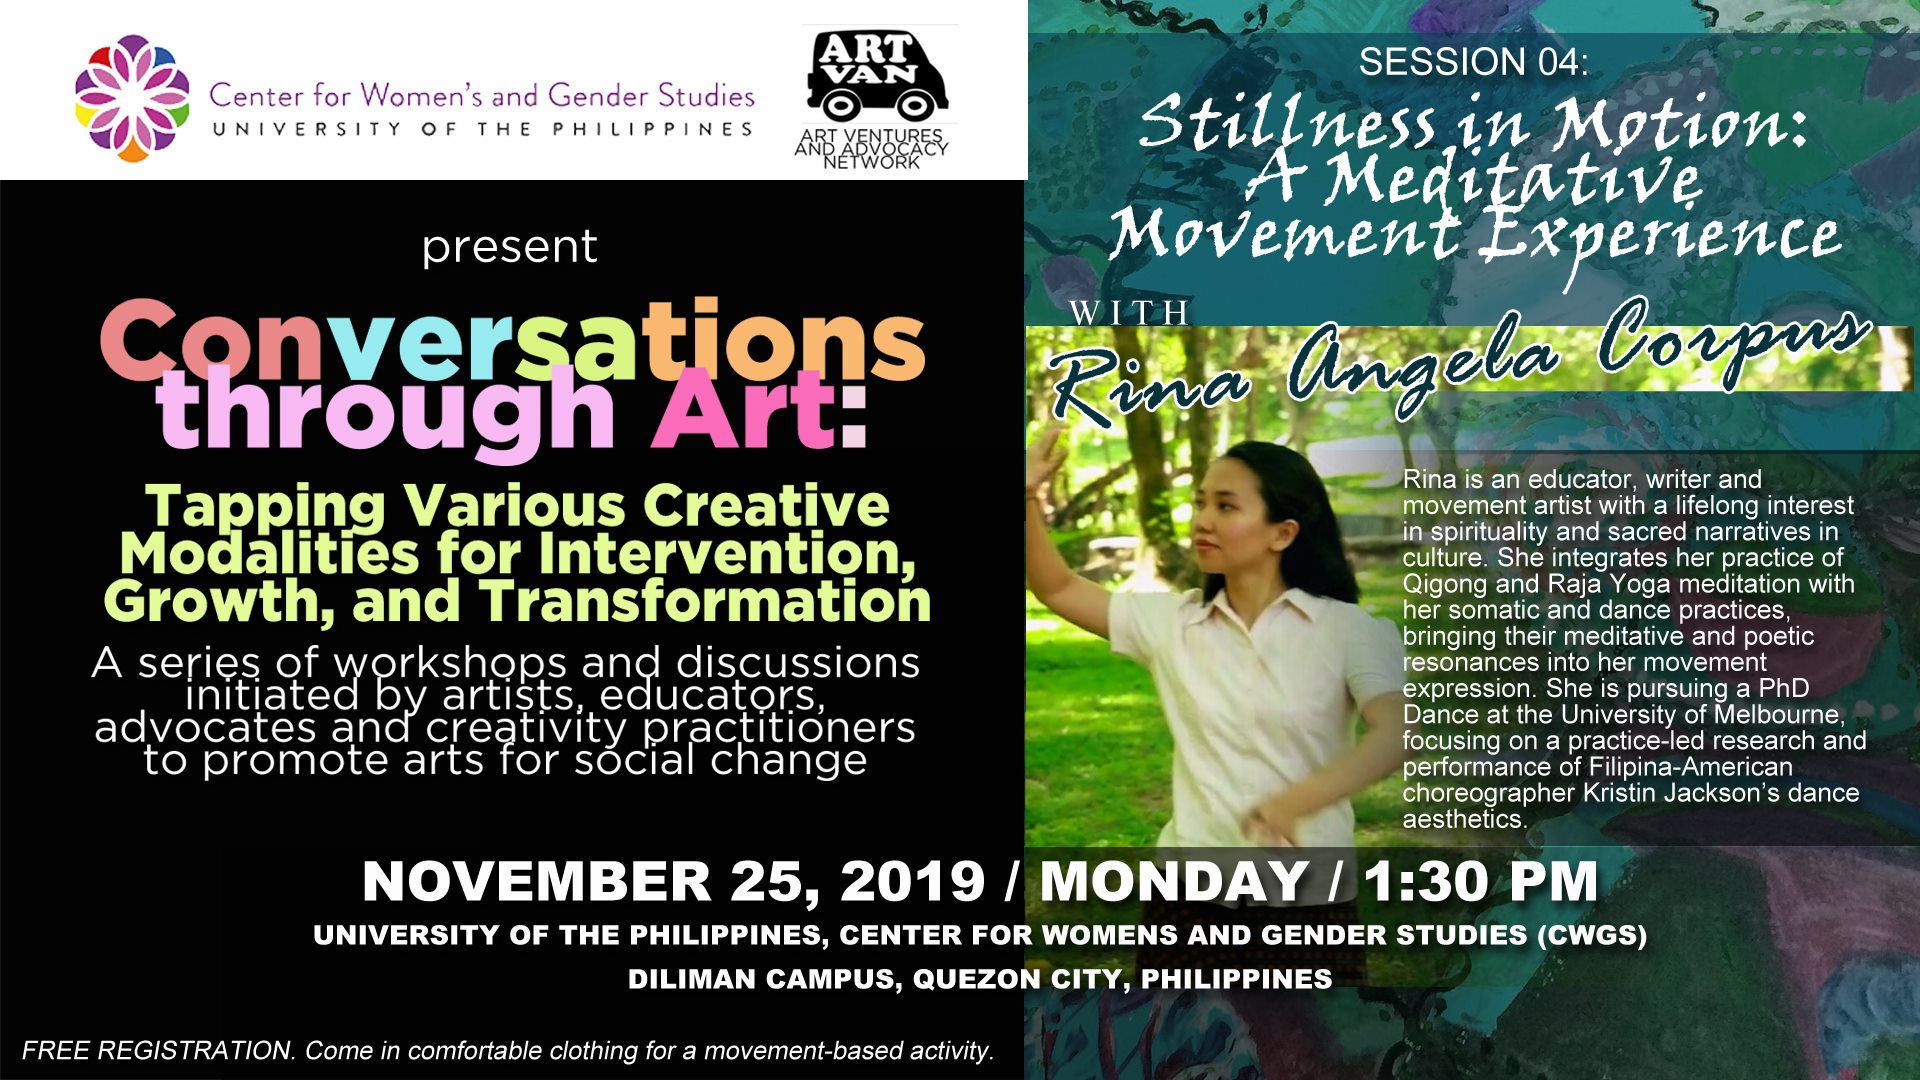 Conversations through Art, UP Centre for Women's and Gender Studies